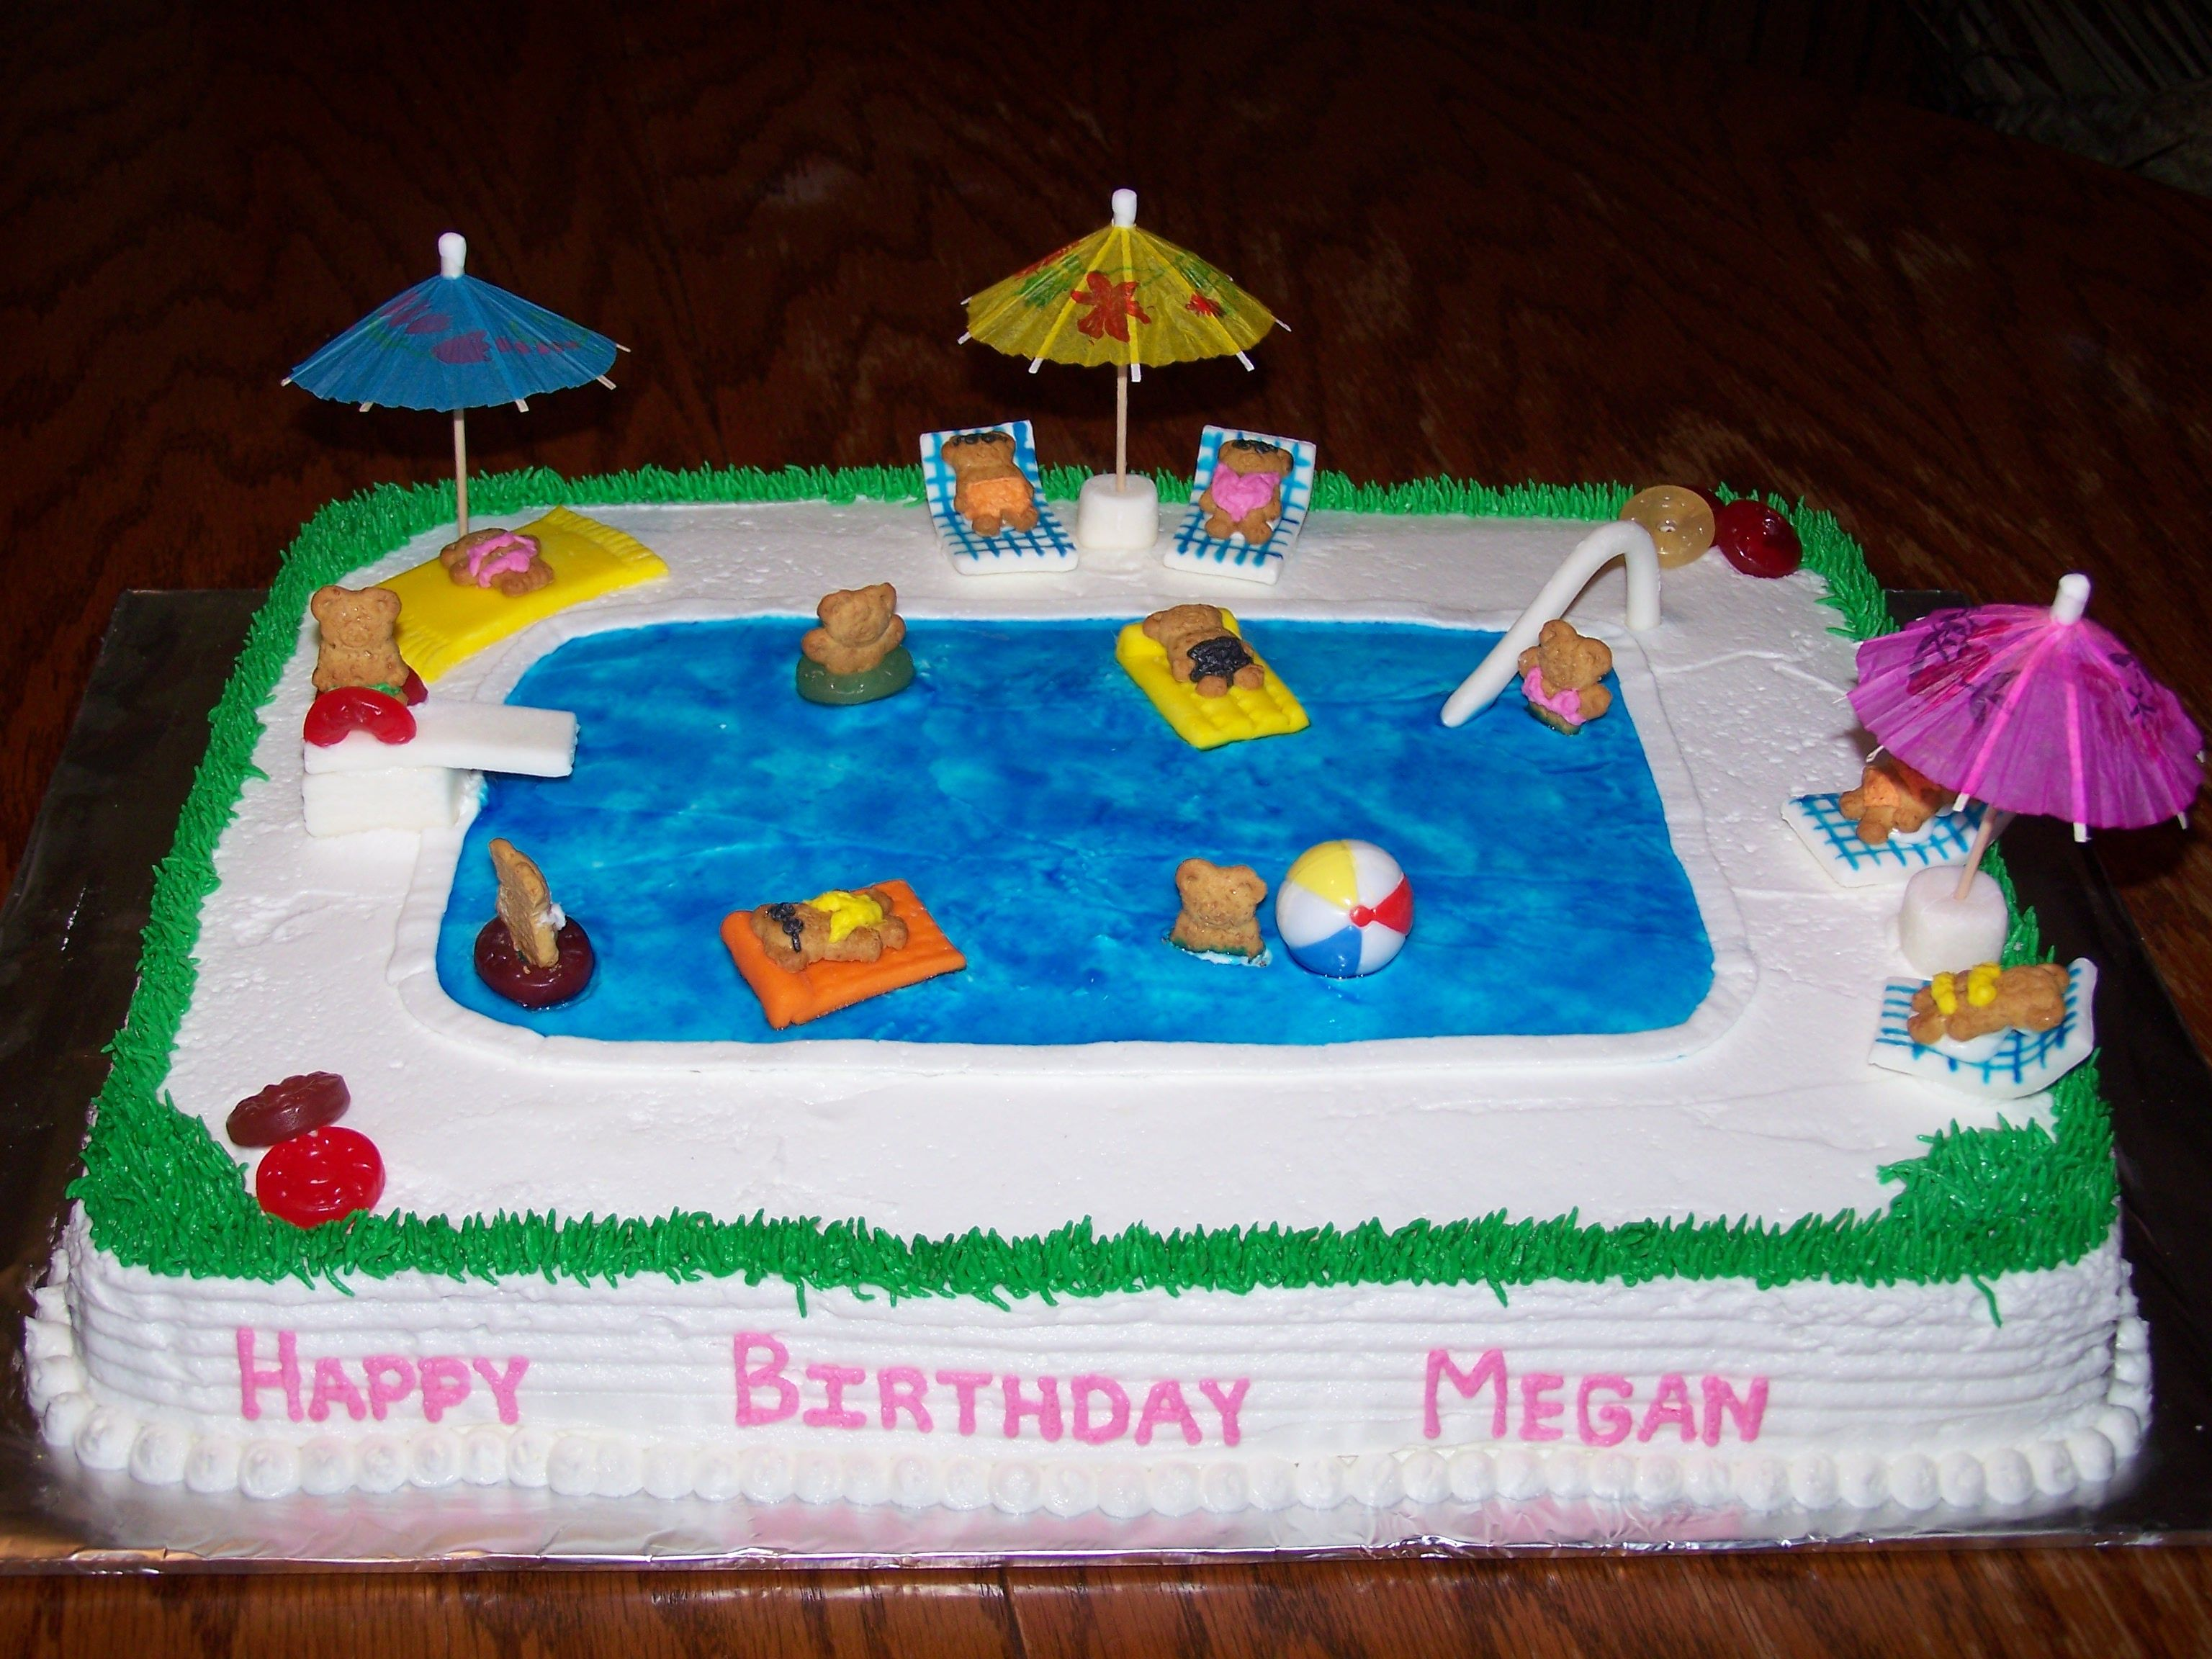 Miraculous Swimming Pool Cake With Images Pool Party Cakes Pool Cake Funny Birthday Cards Online Inifodamsfinfo